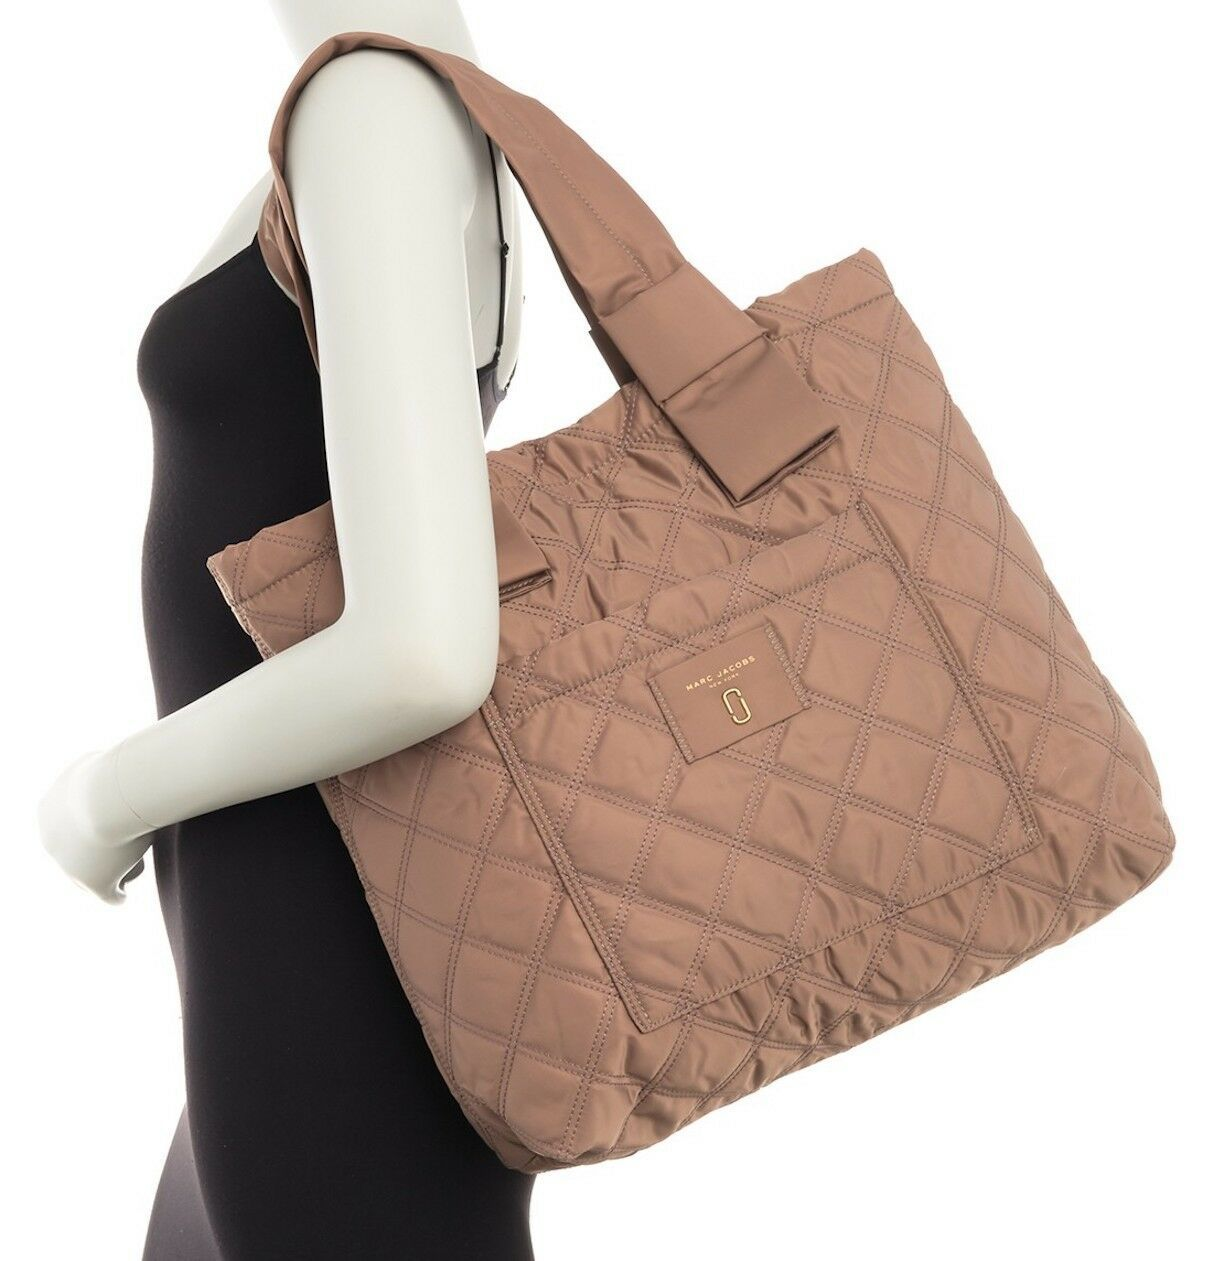 Primary image for Marc Jacobs Bag Diamond Quilted Nylon Large Knot Tote French Grey NEW